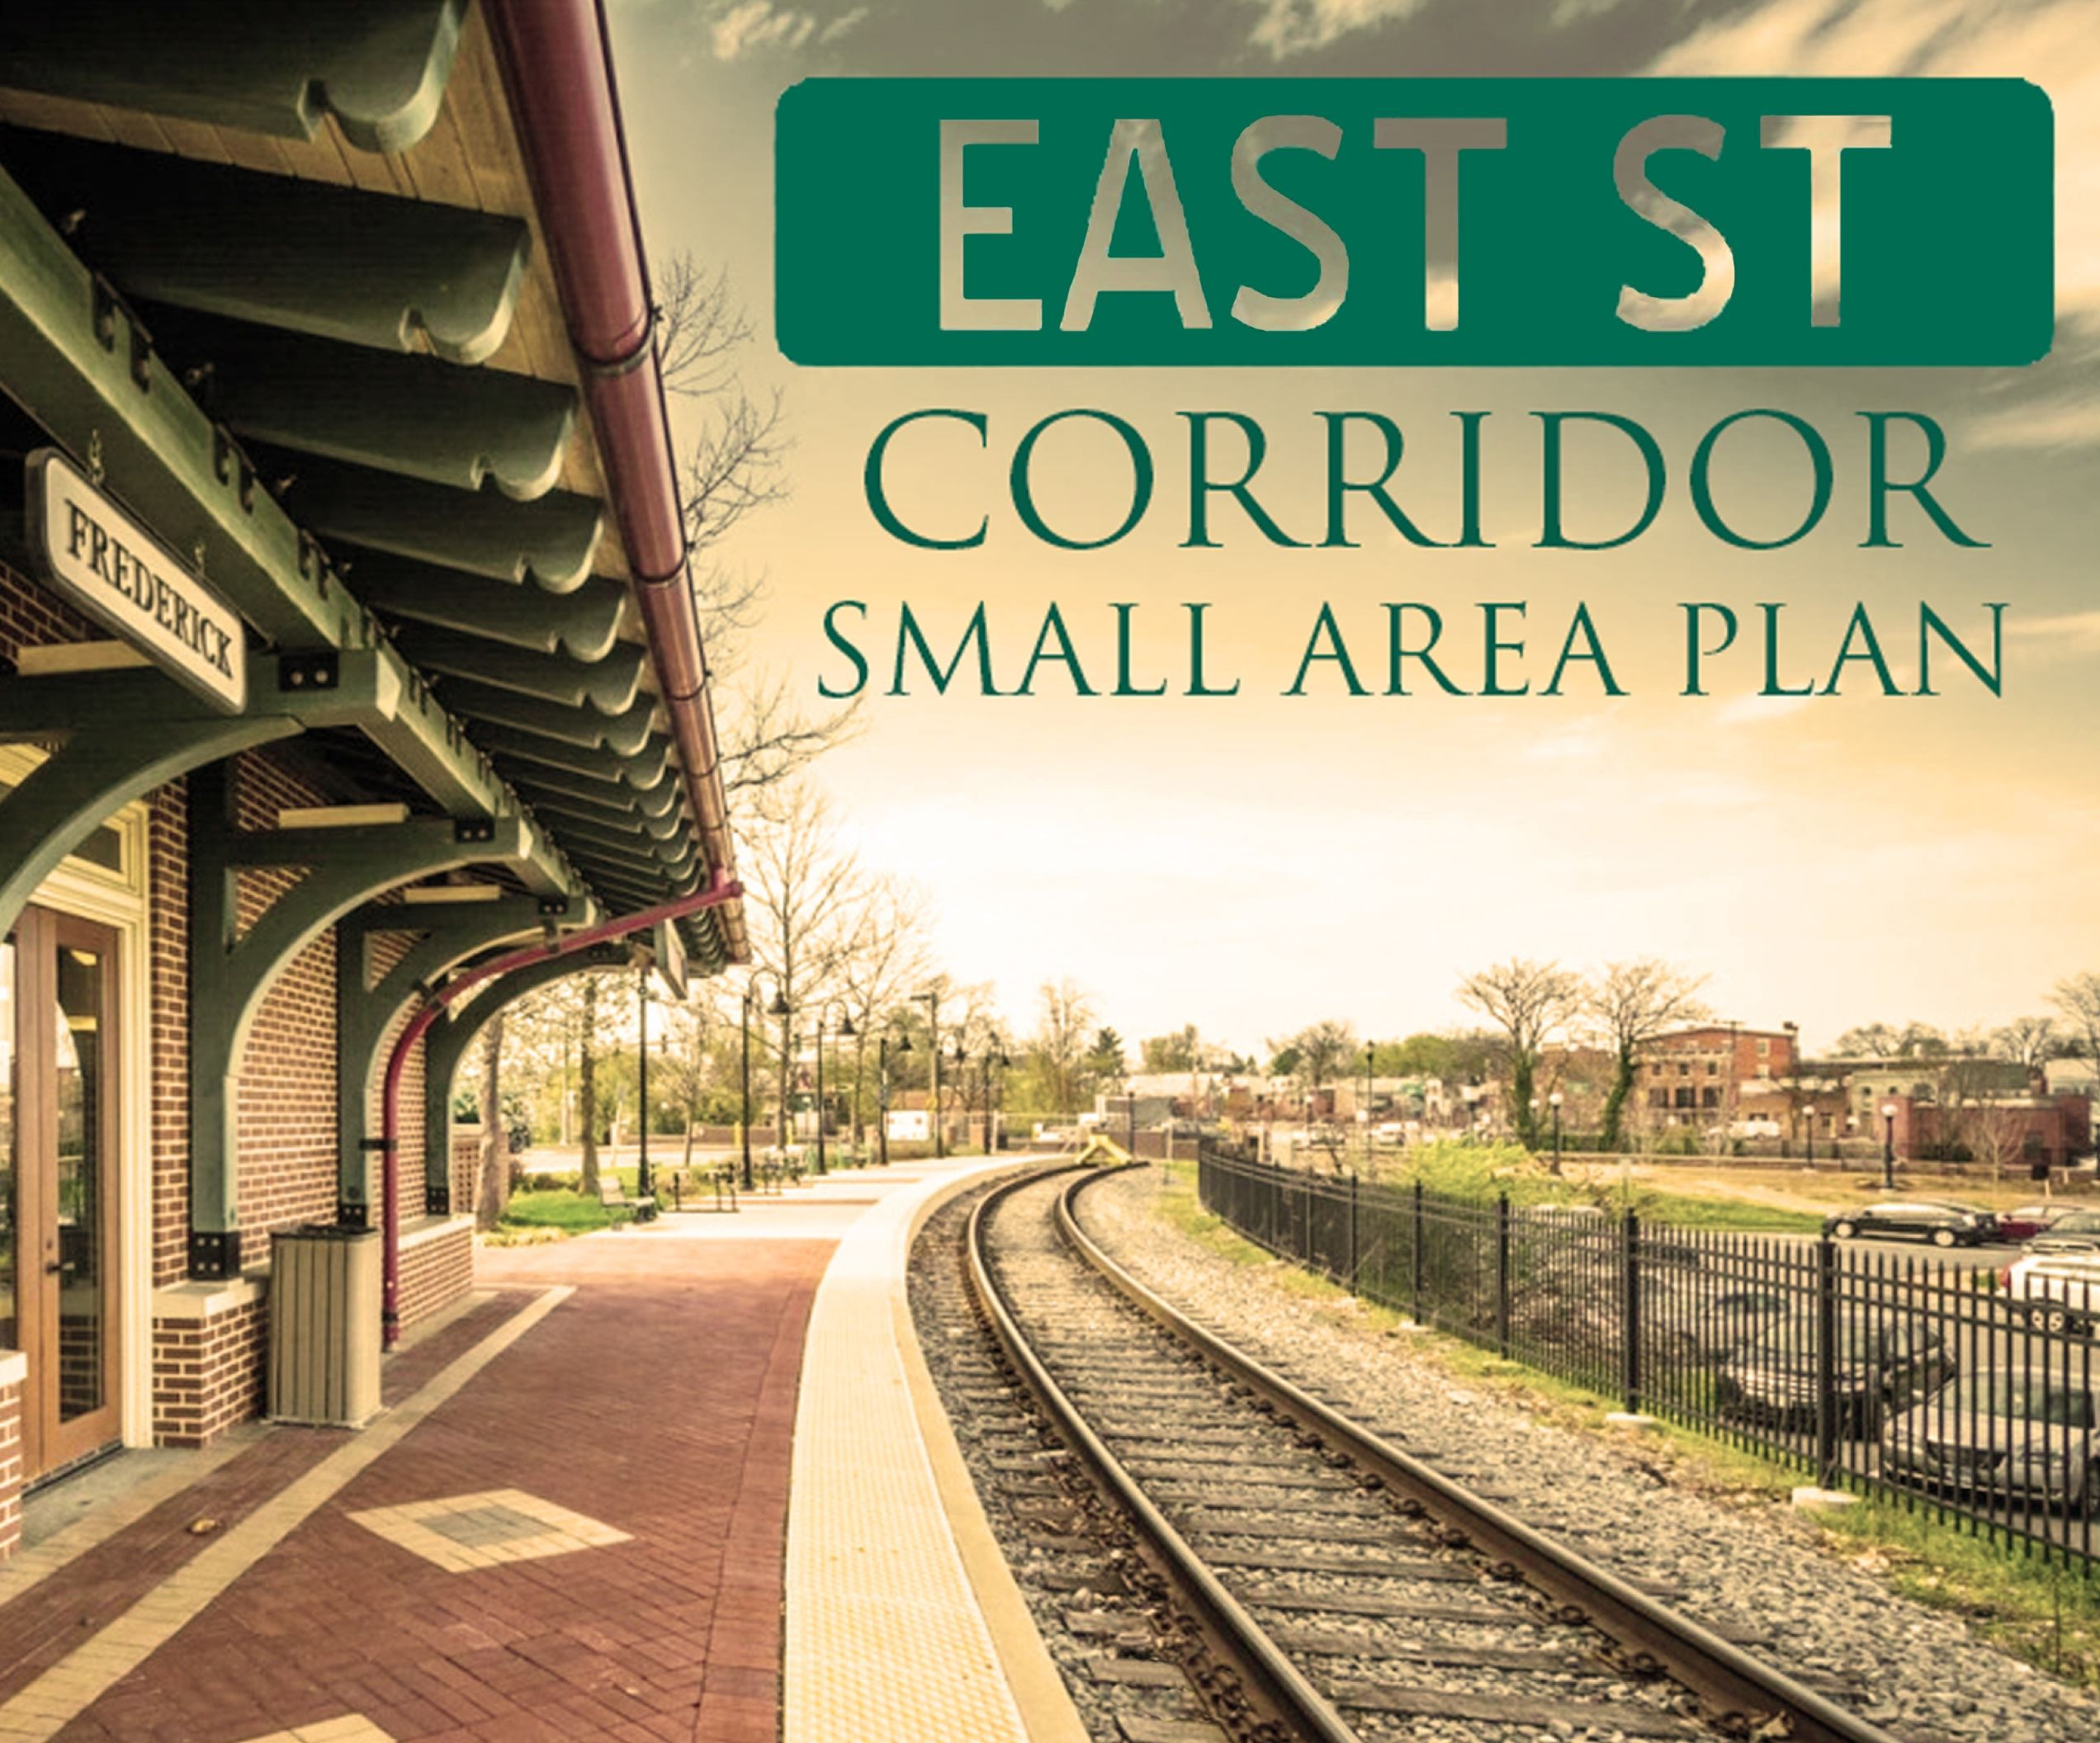 East Street Corridor Small Area Plan